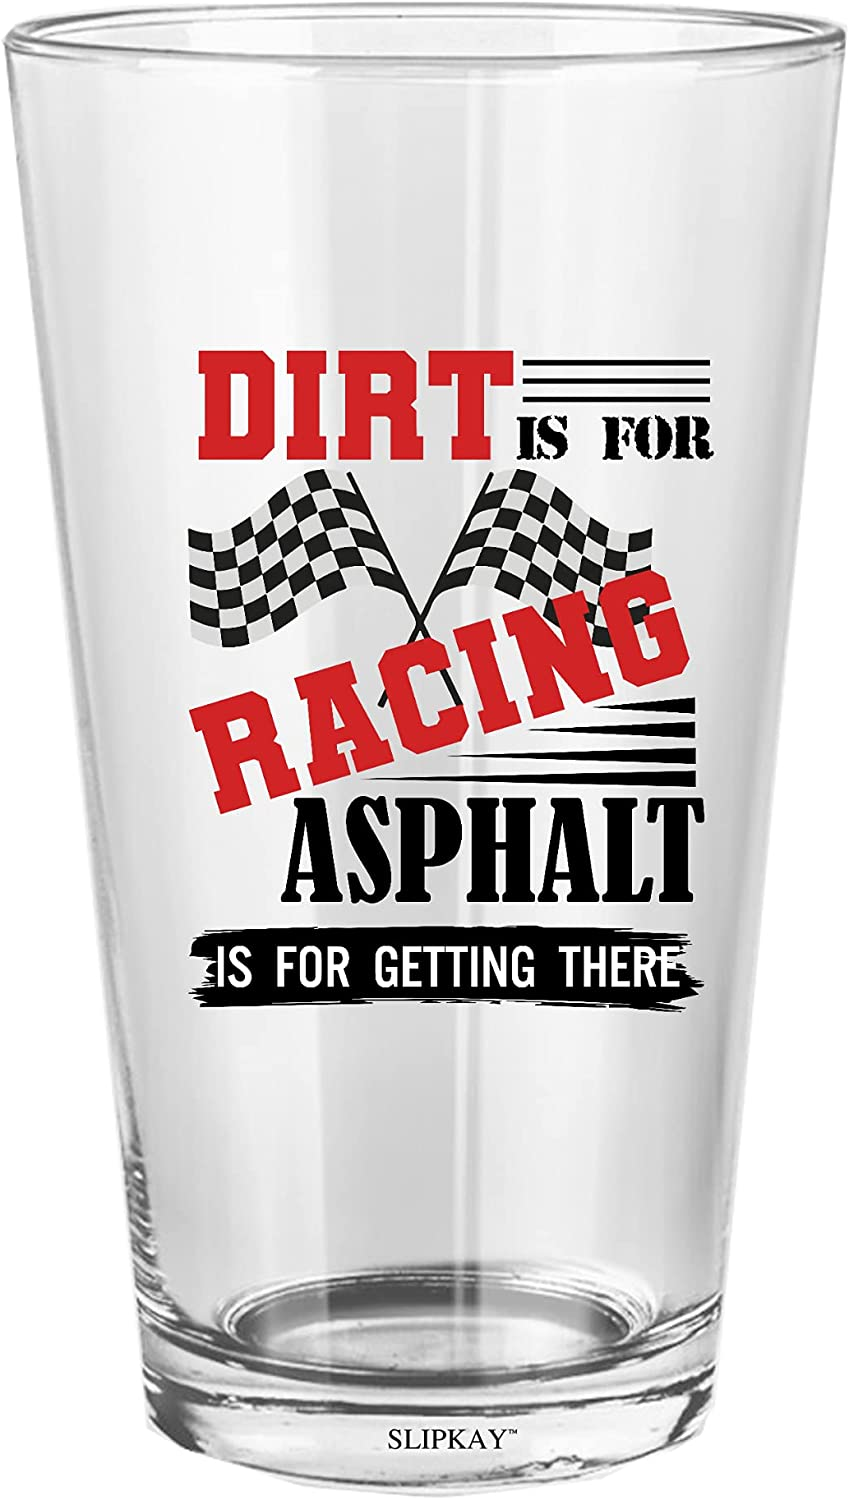 Dirt Is For Racing Asphalt Getting Oz Popularity 16 Glass There Pint Direct store